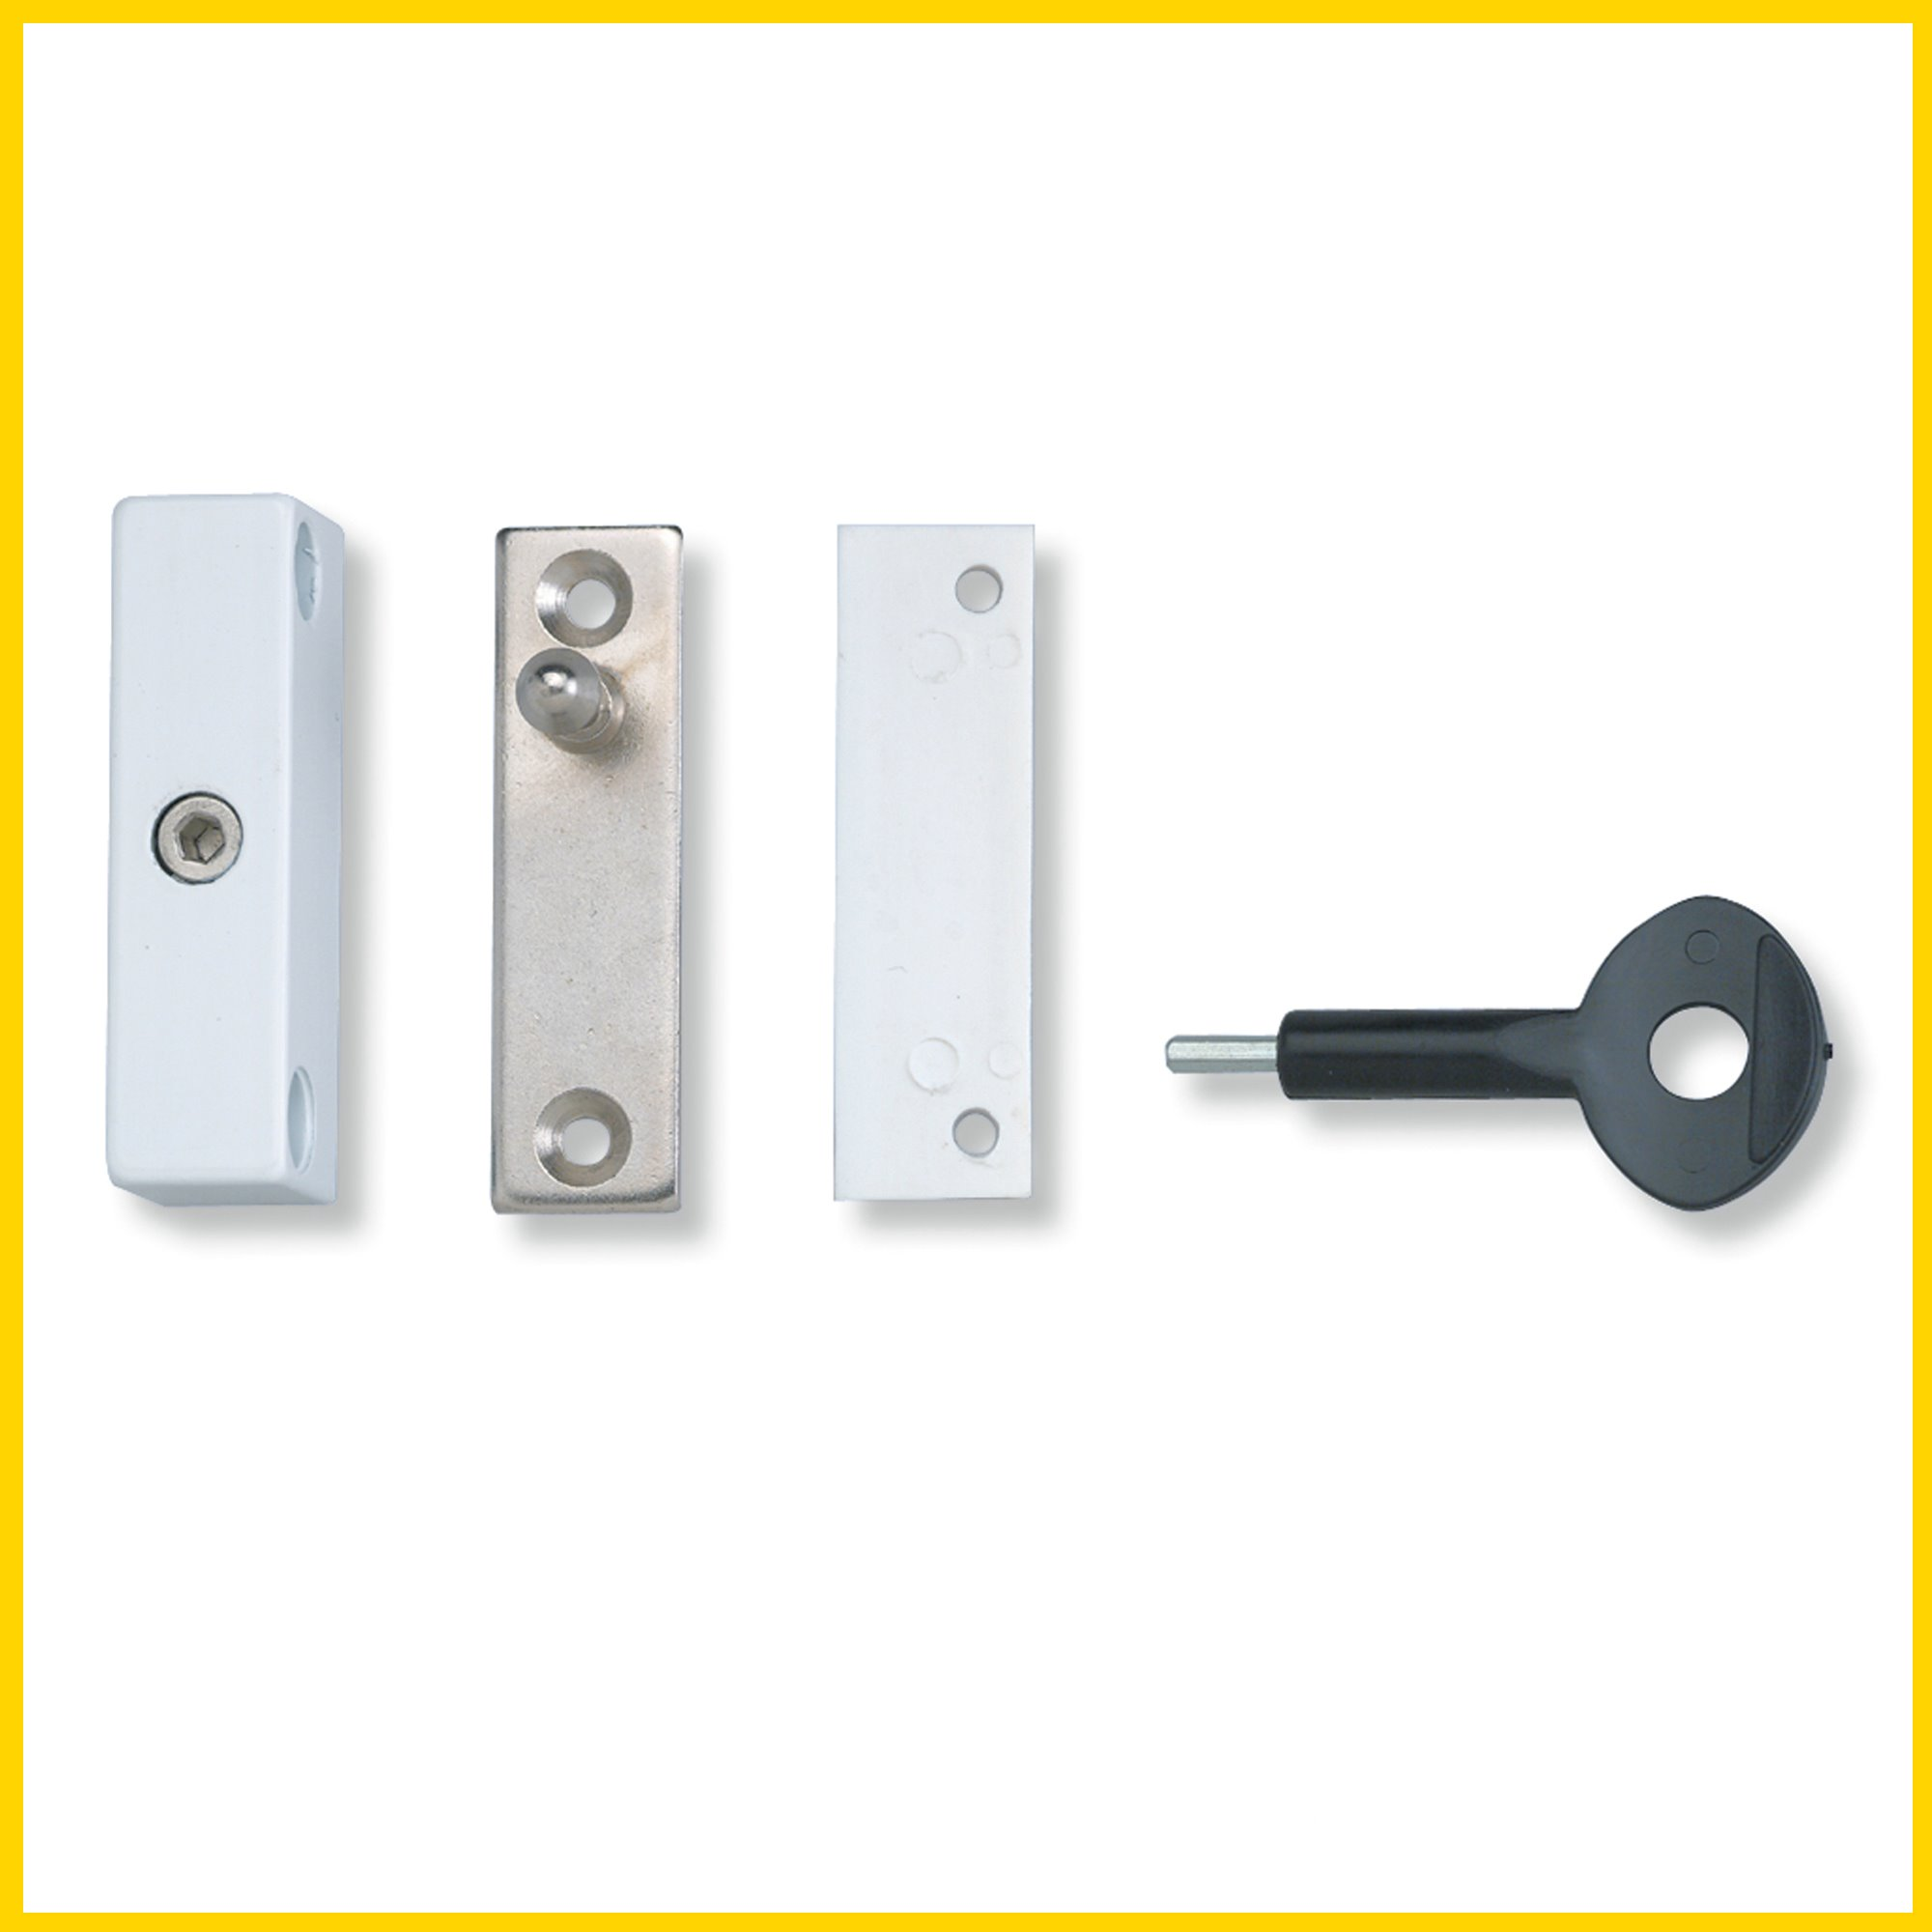 P118 - Automatic Window Lock